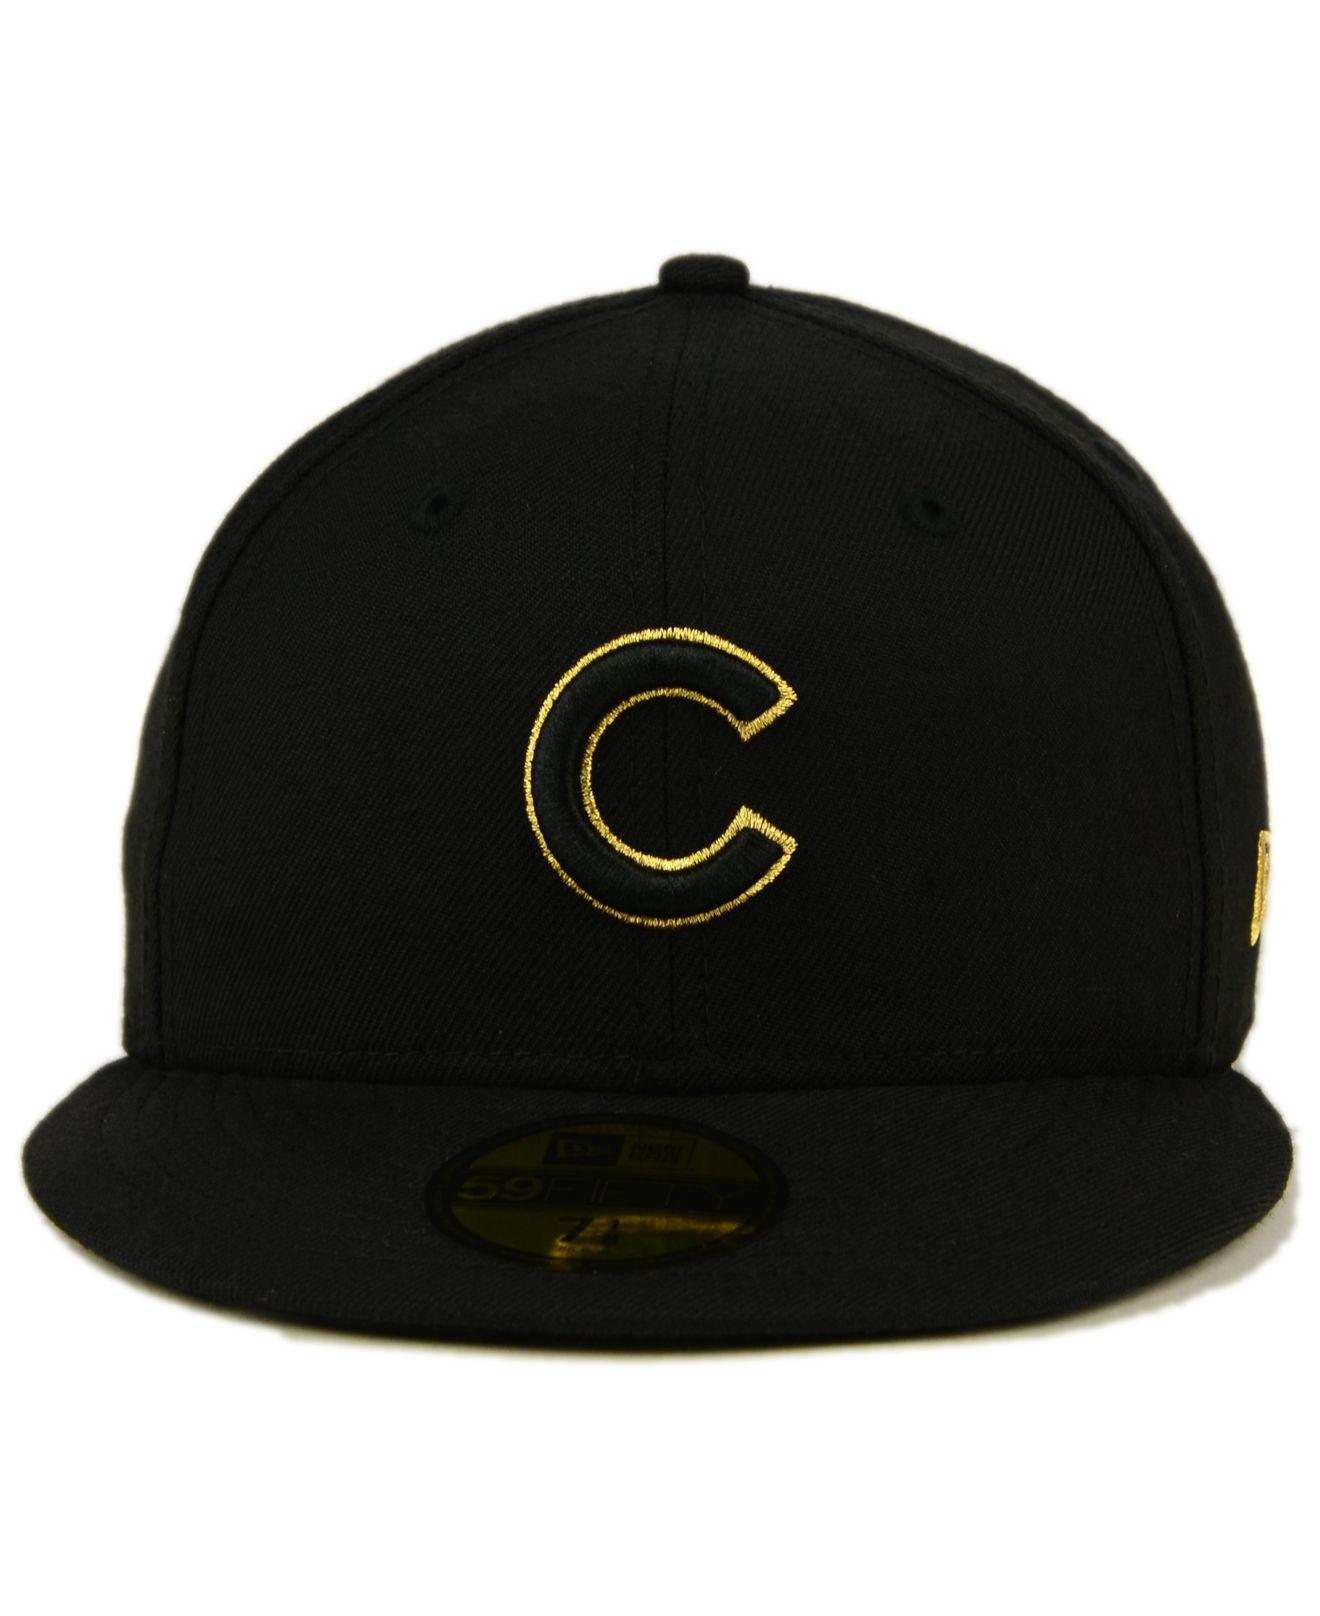 Lyst - Ktz Chicago Cubs Black On Metallic Gold 59fifty Fitted Cap in Black  for Men f5265178f263